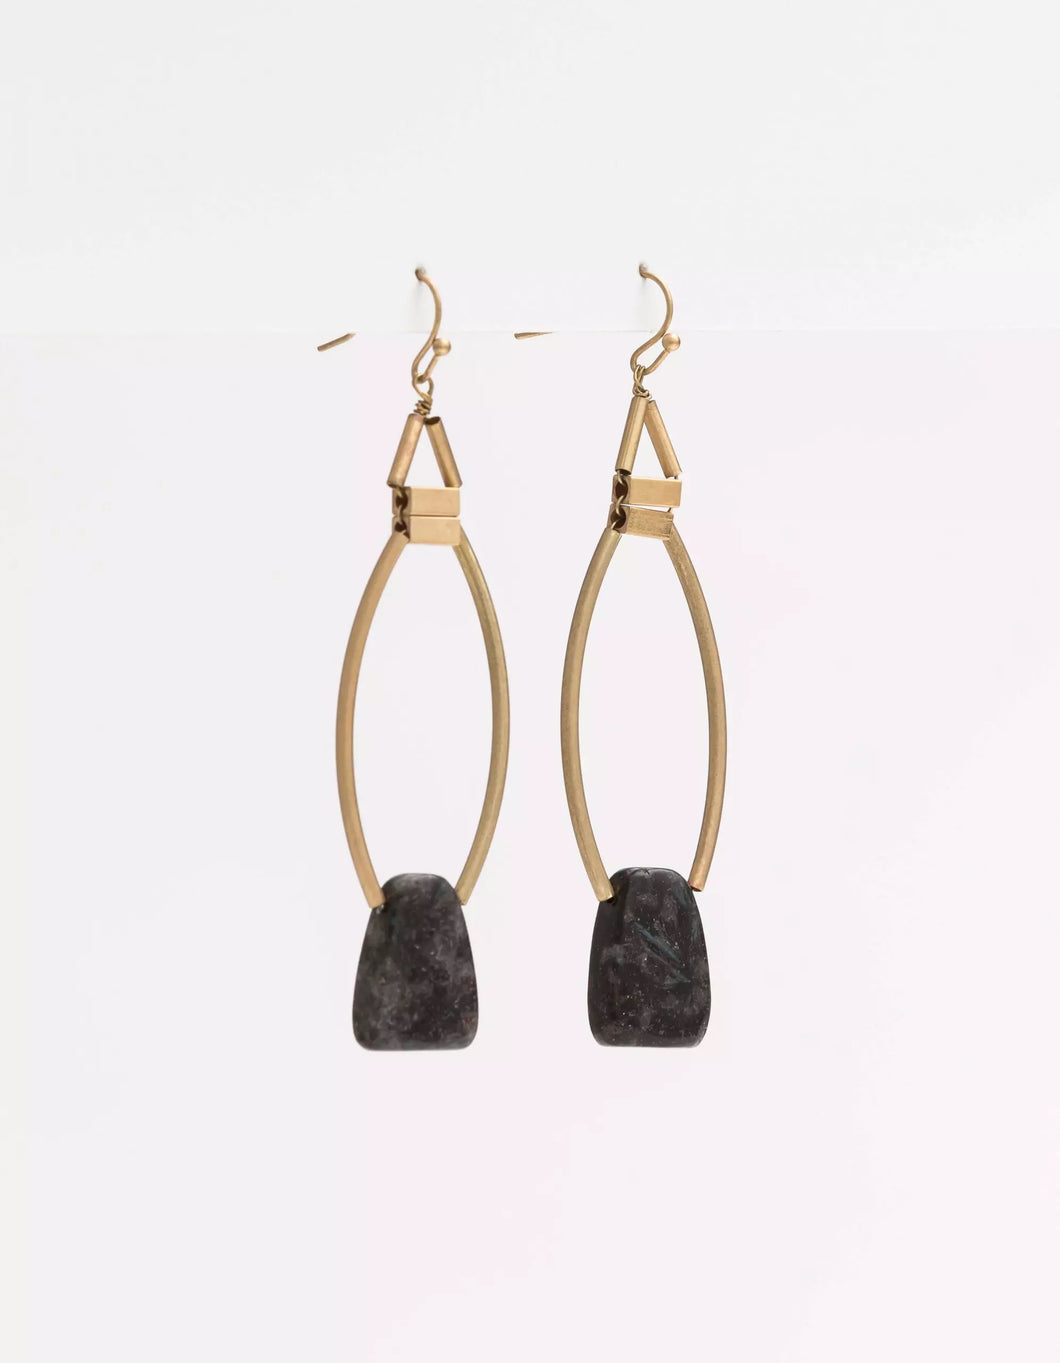 STELLA + GEMMA BLACK W/ BRASS EARRINGS